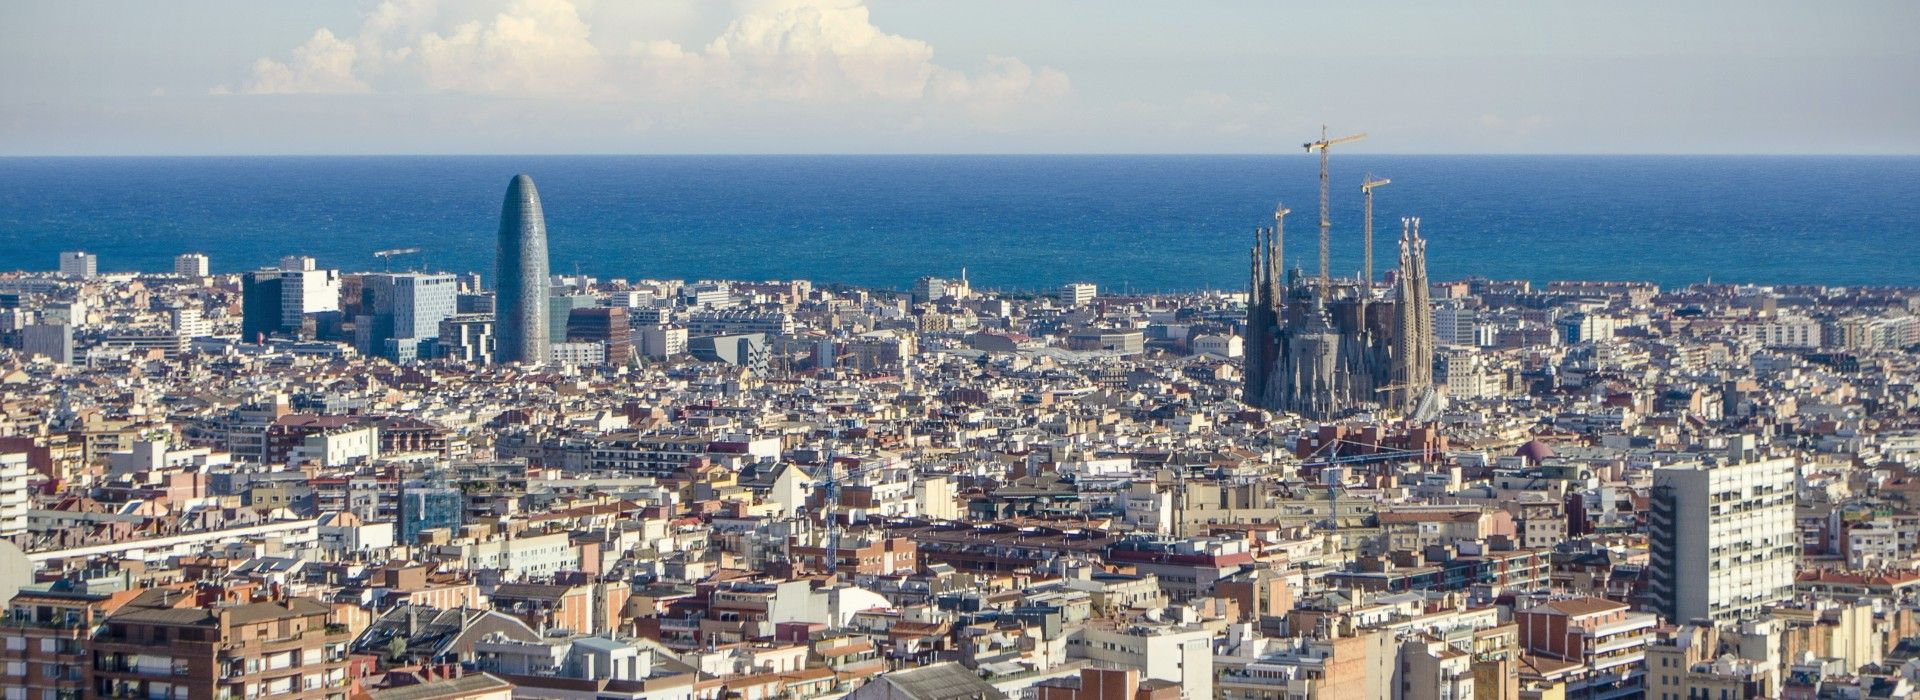 Travelling Barcelona - Tours and Holiday Packages in Barcelona